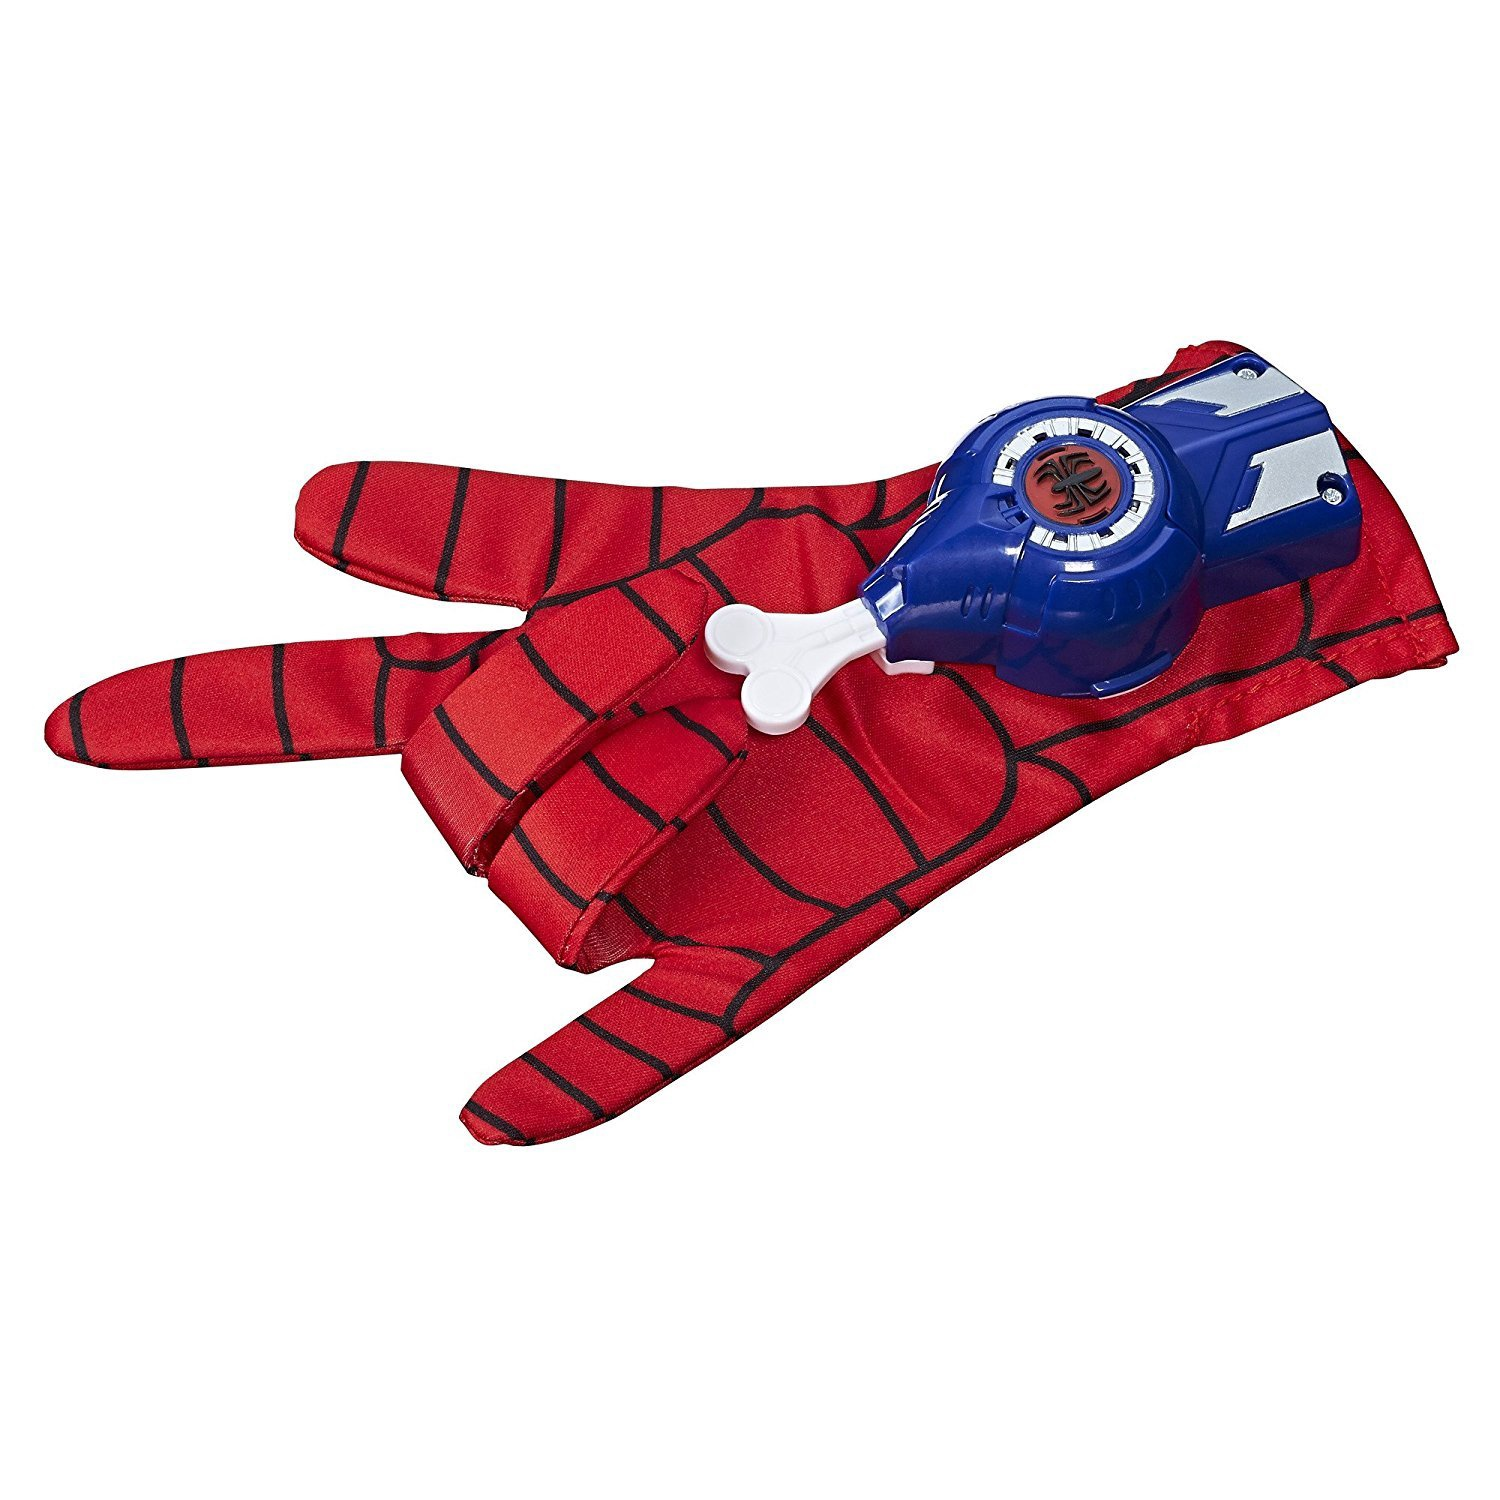 SPIDERMAN HERO FX GLOVE